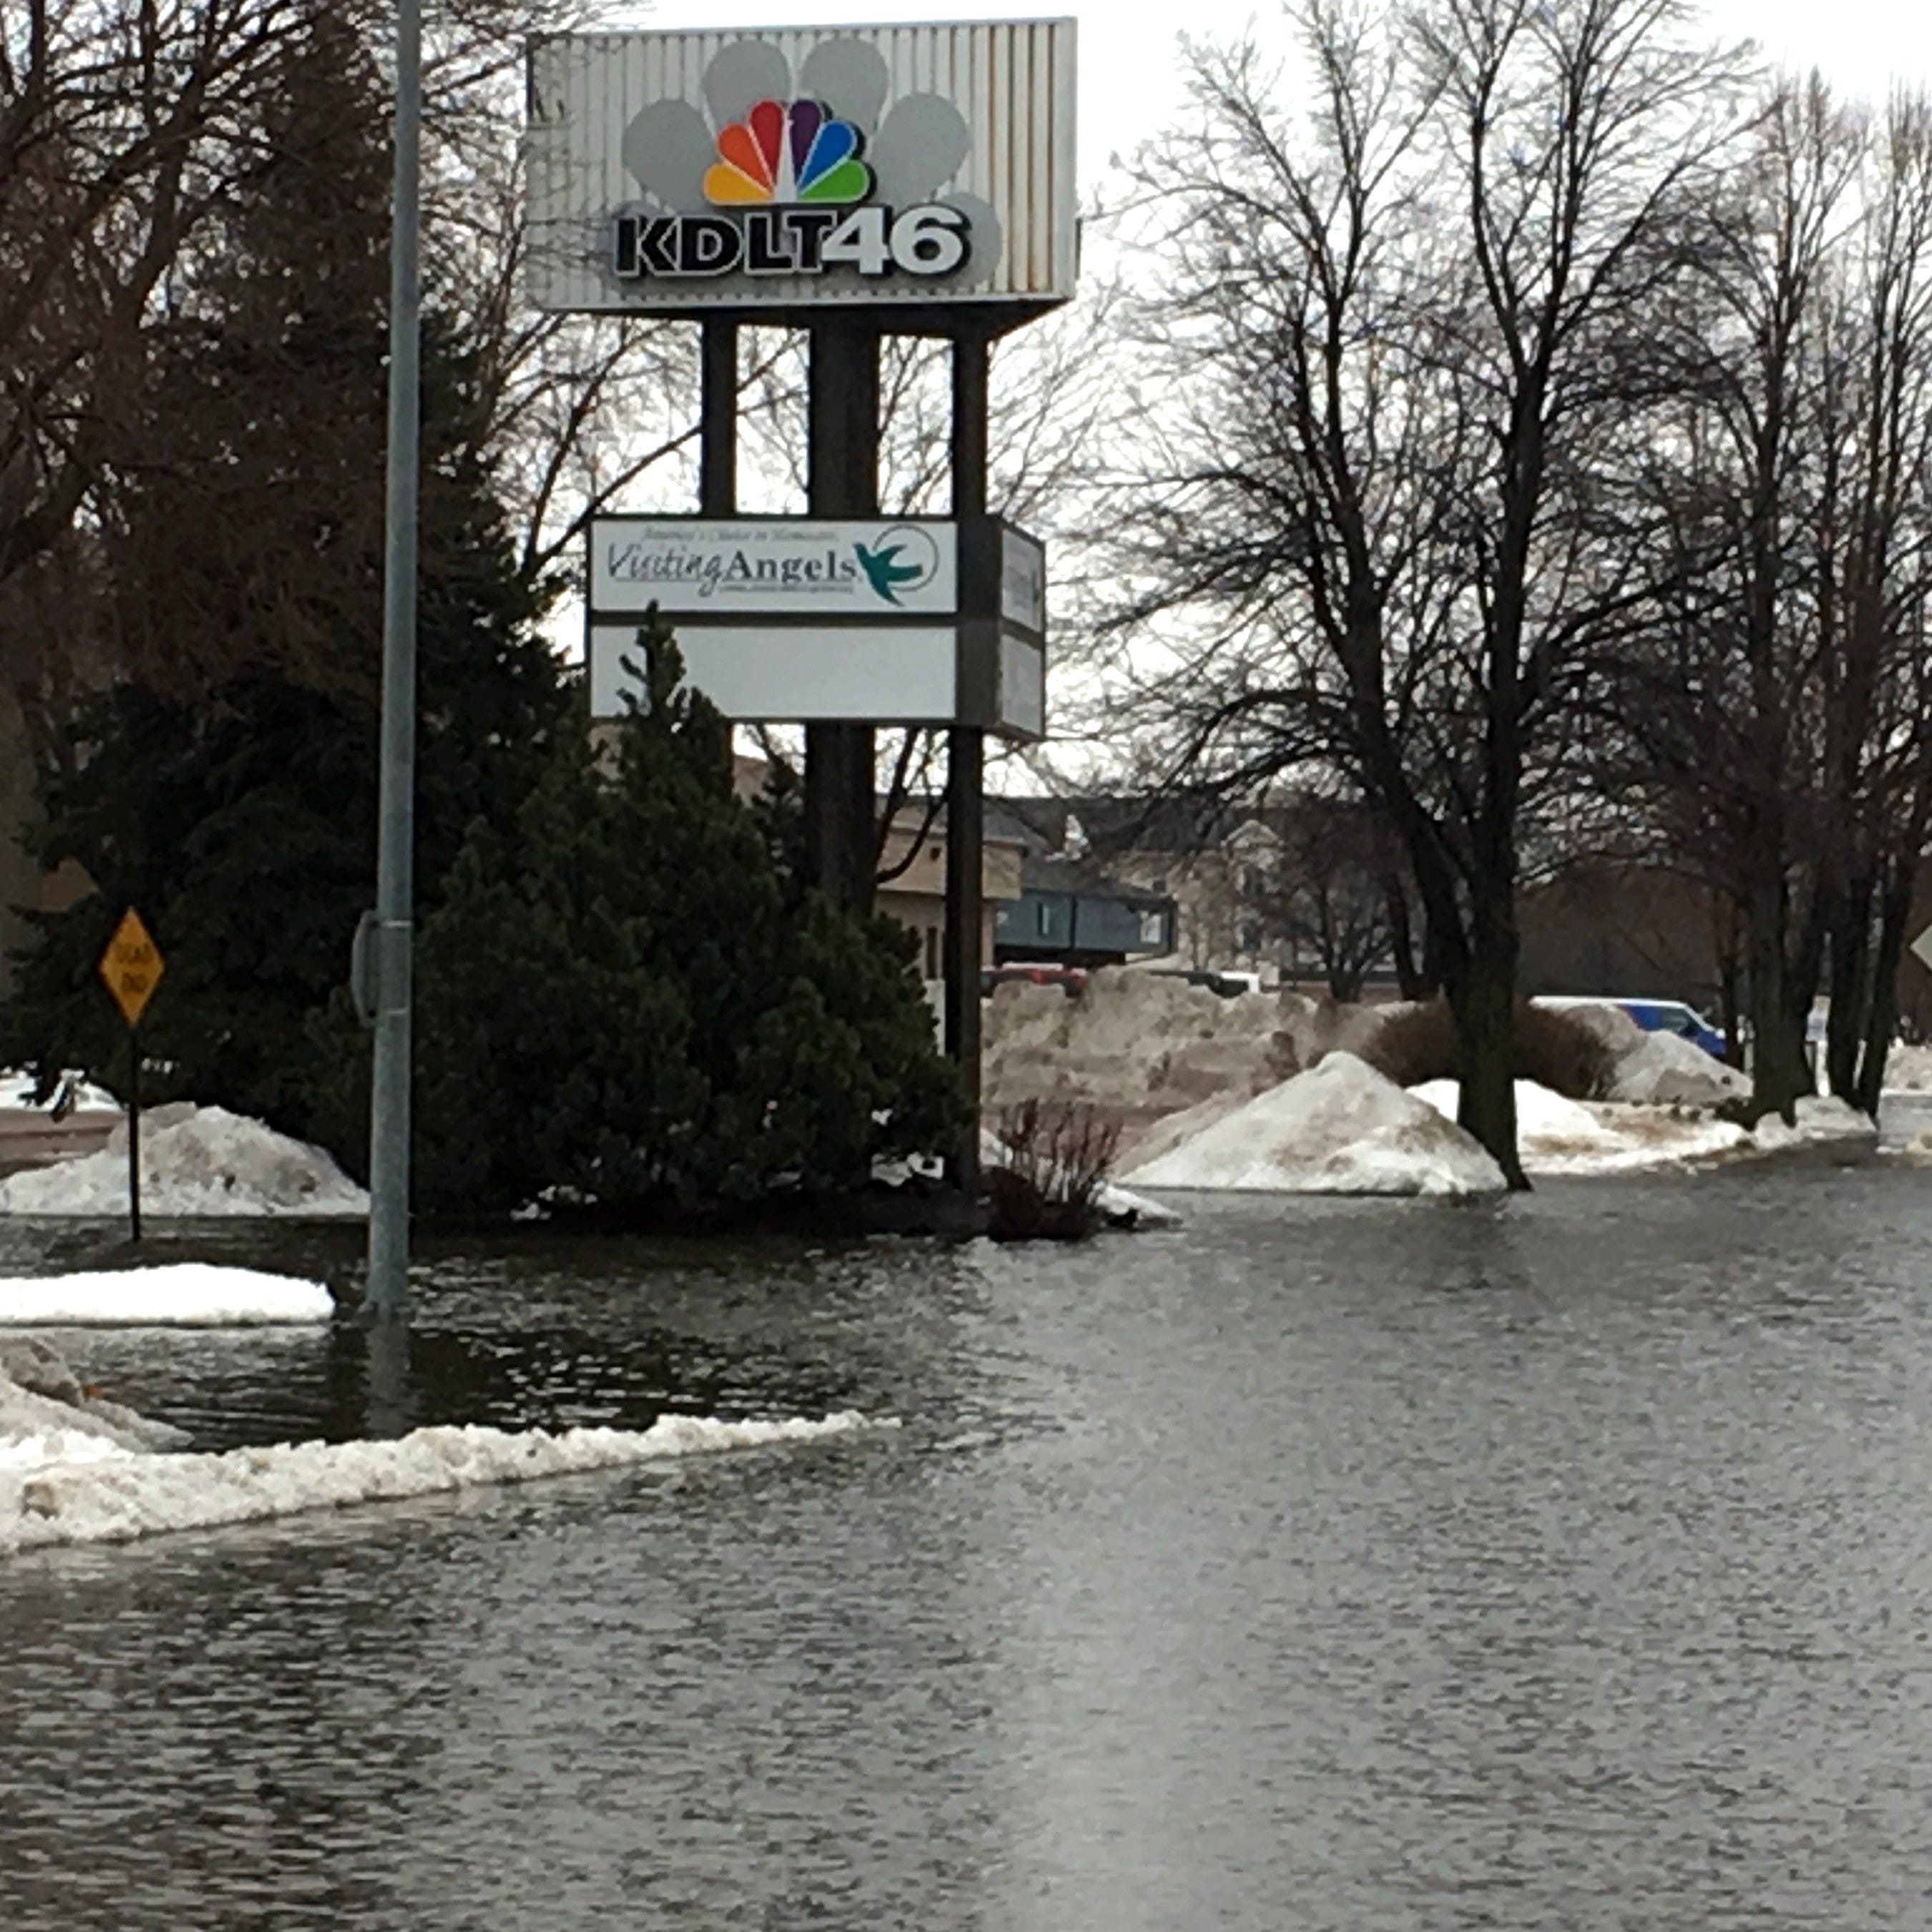 Sioux Falls flooding: KDLT cancels broadcasts due to flooding